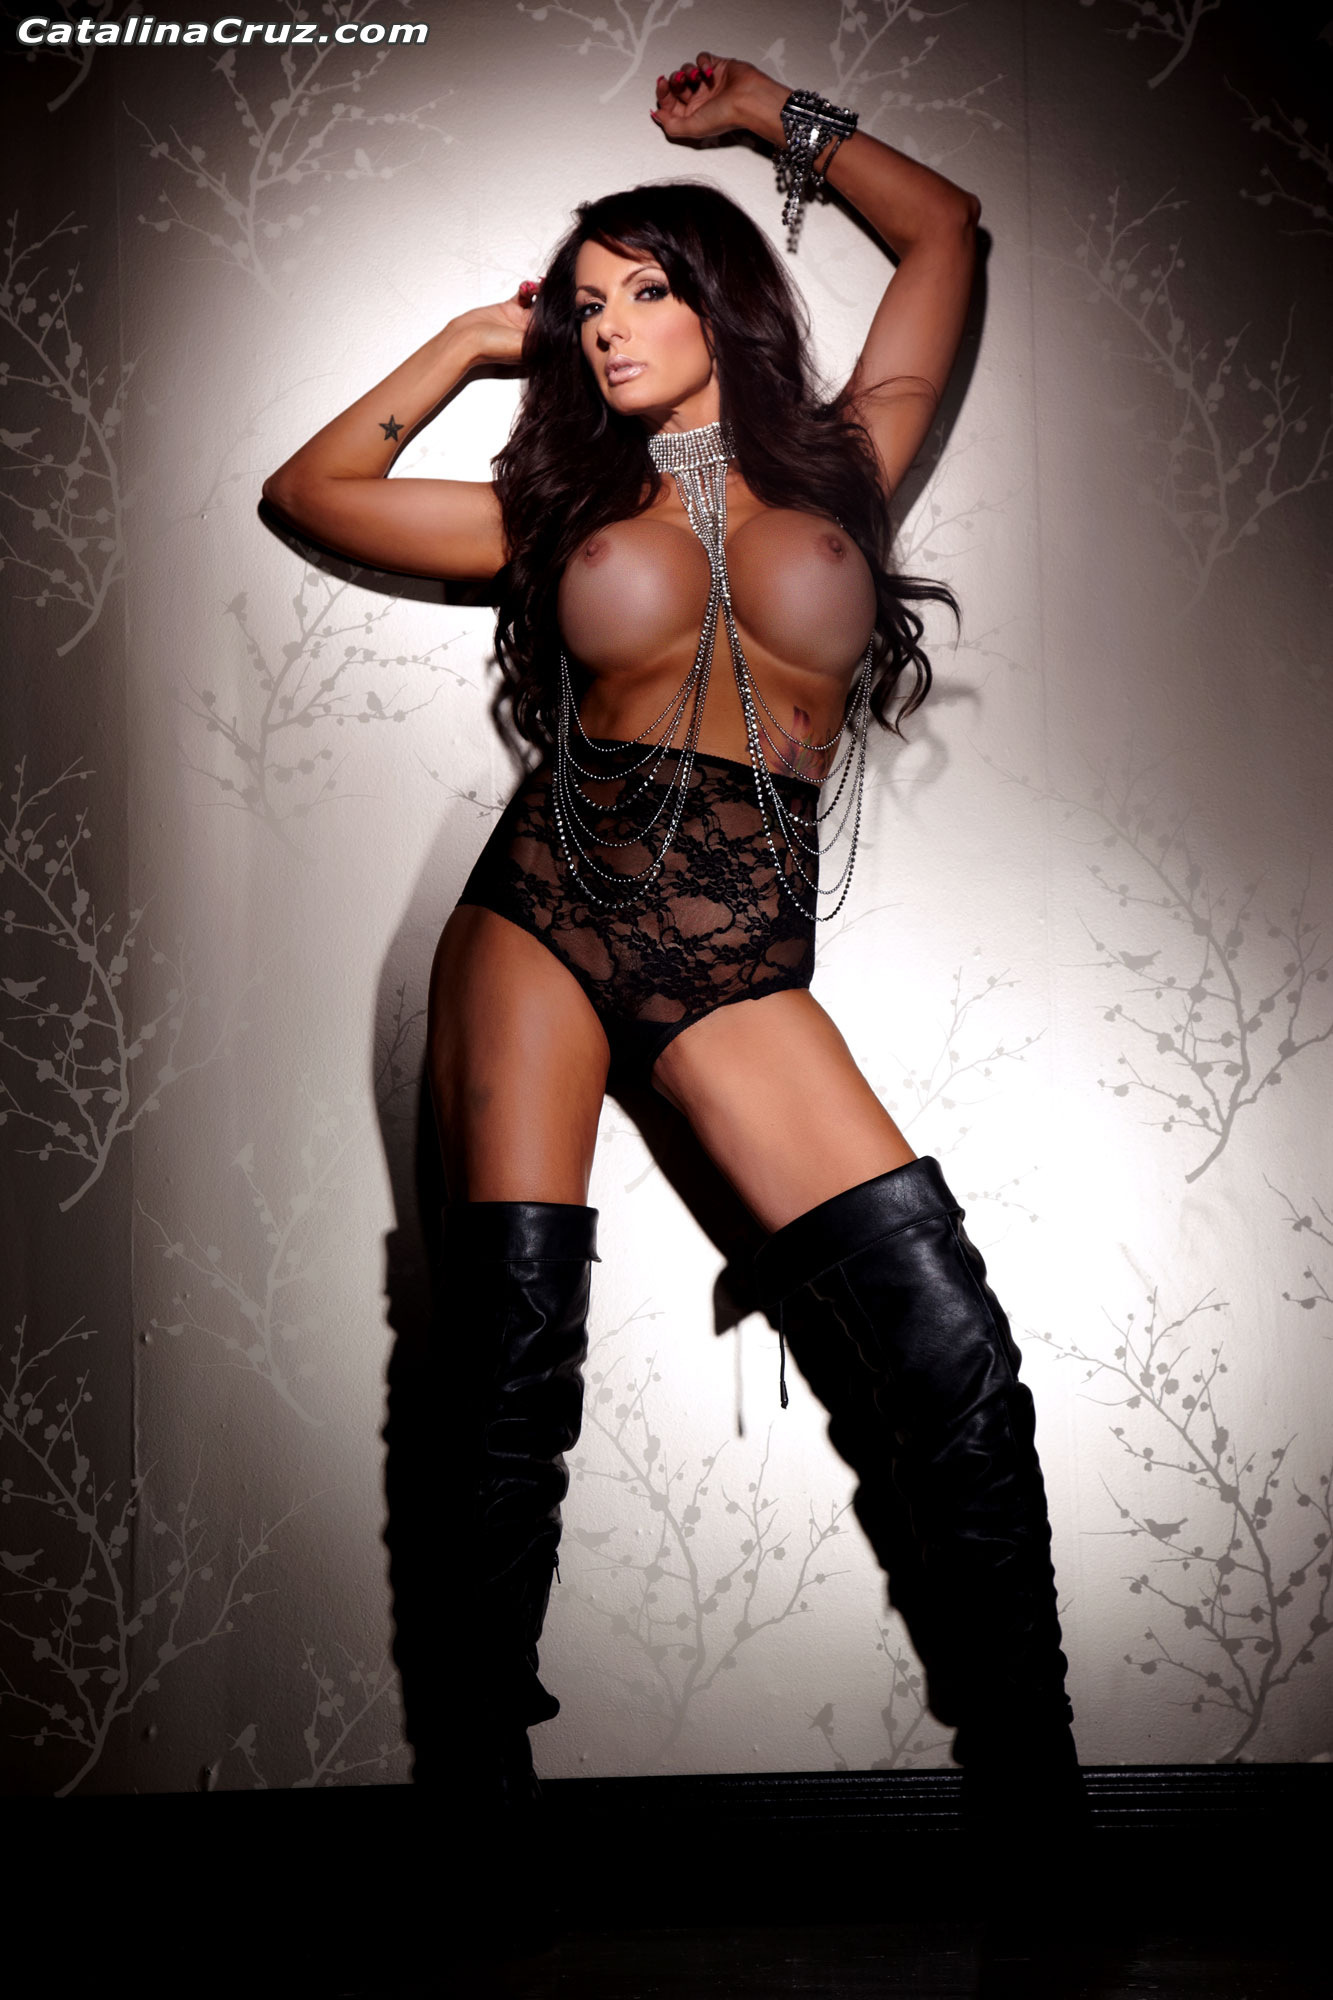 Catalina Cruz Big Tits and Black Leather Thigh High Boots